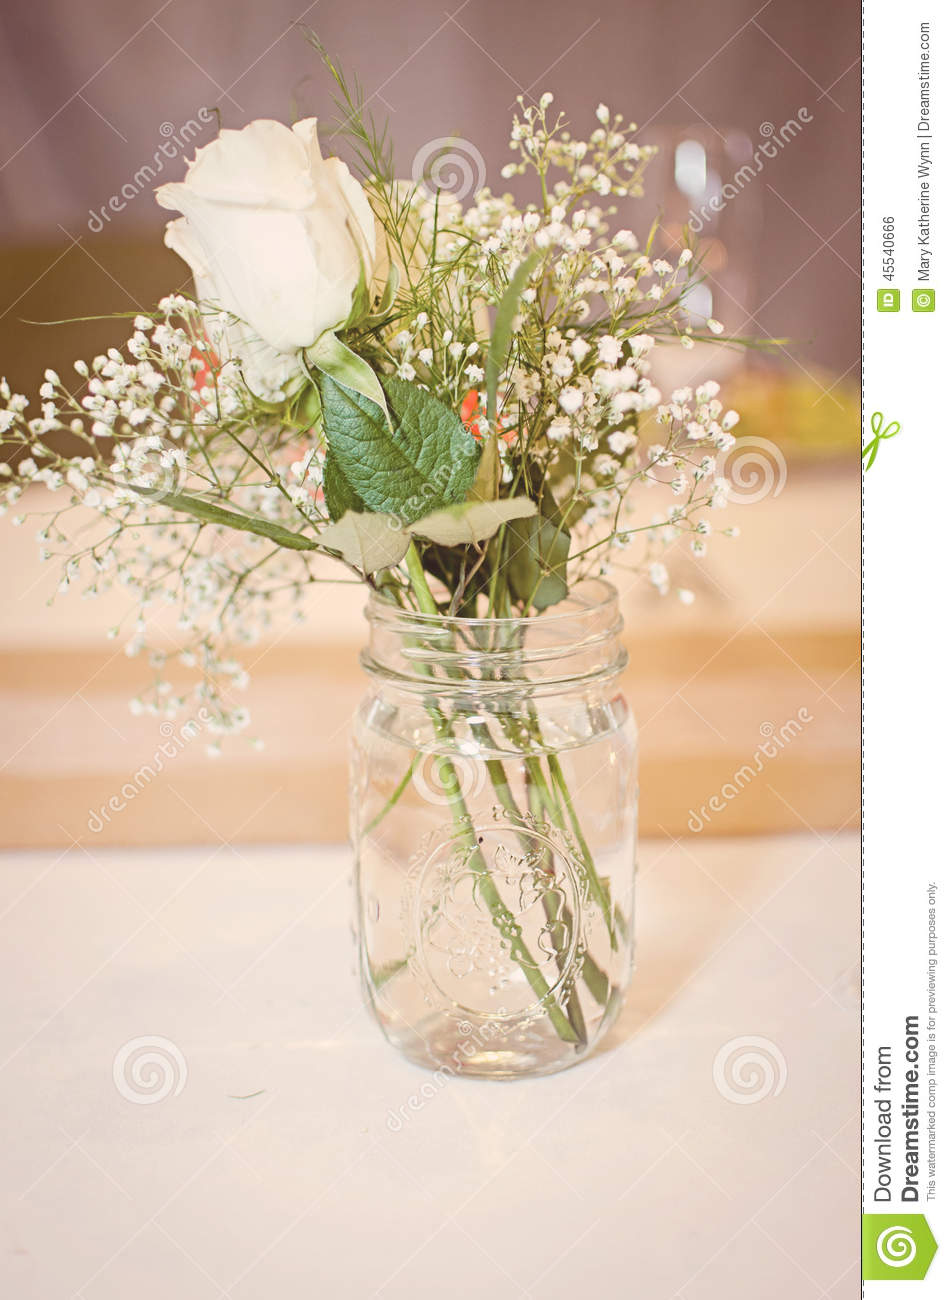 mason jar bouquet stock photo image of cloth arrangement 45540666. Black Bedroom Furniture Sets. Home Design Ideas